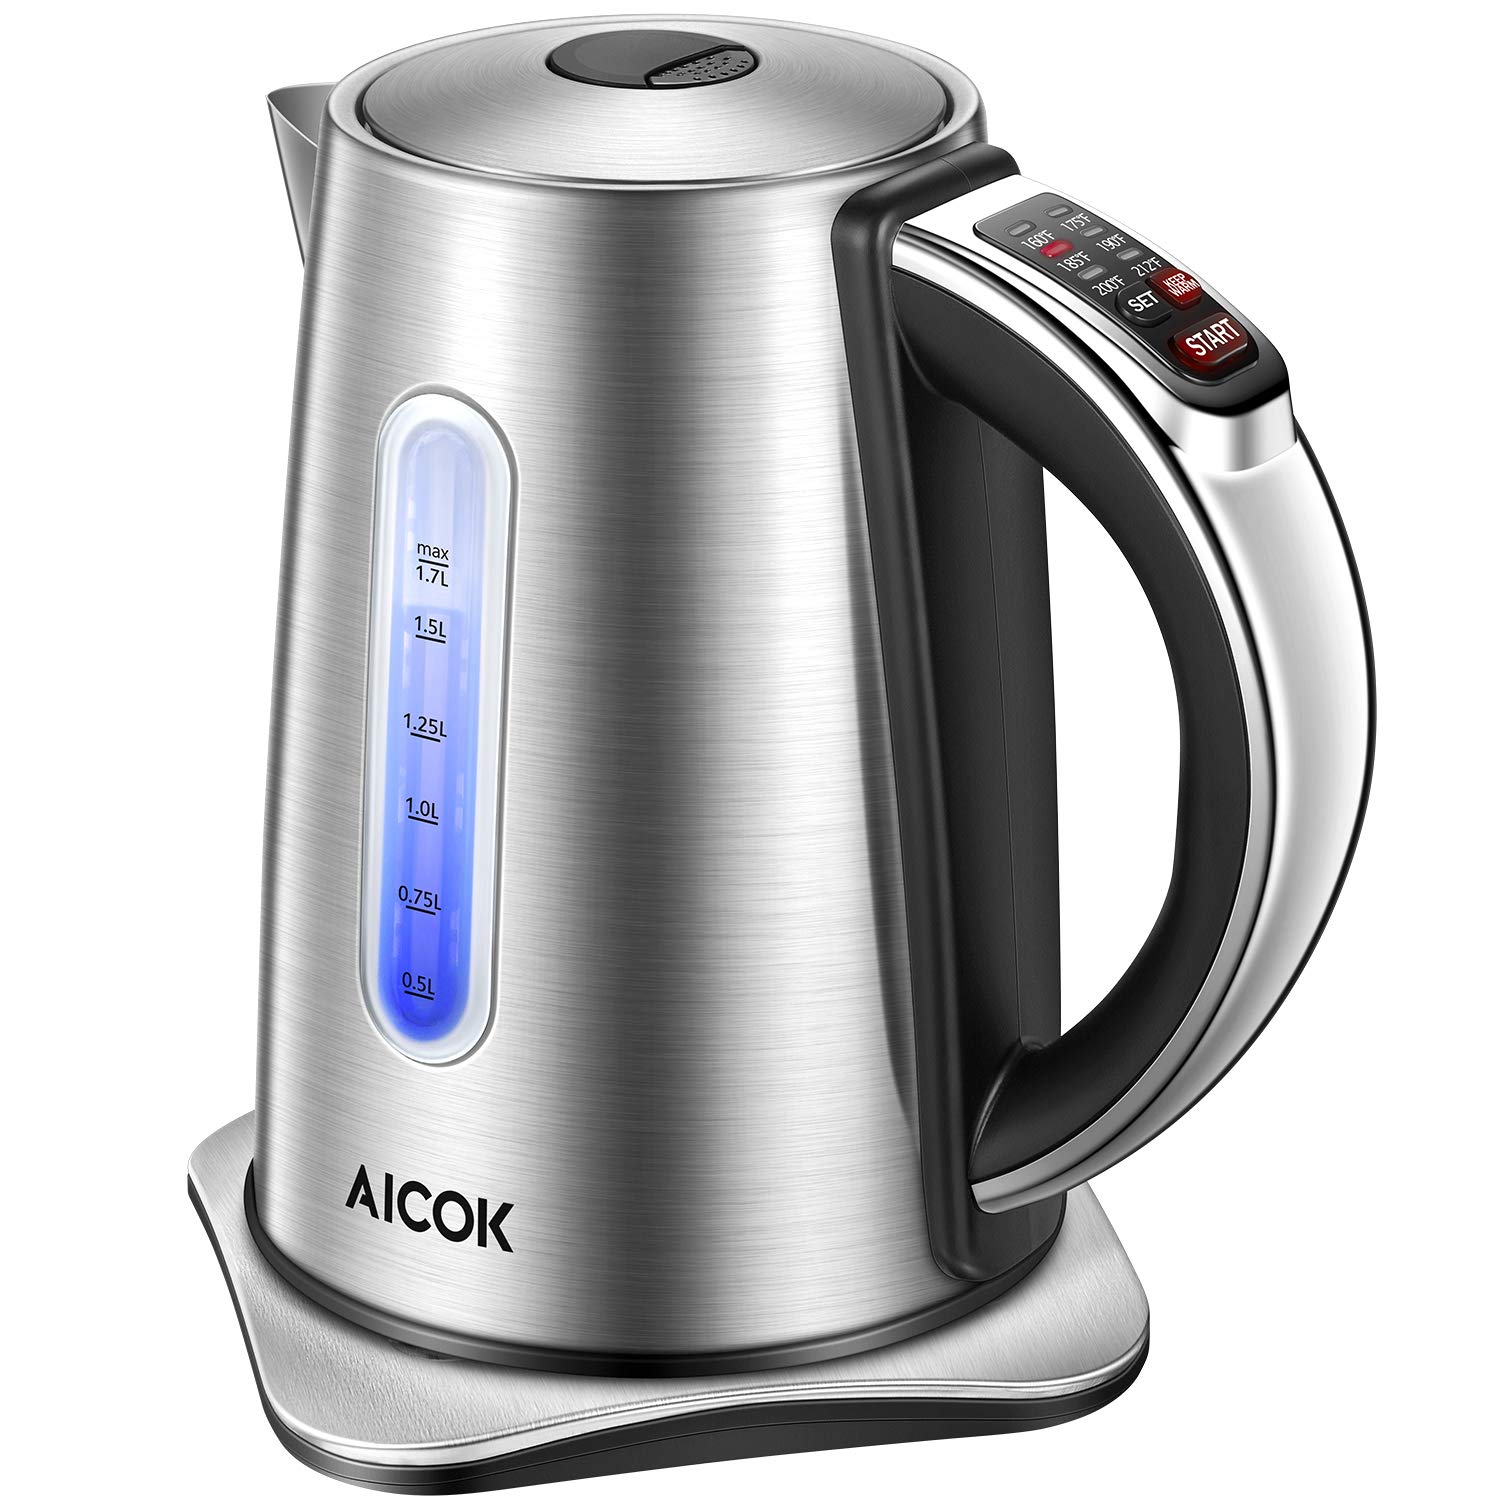 Electric Kettle 2nd Gen Variable Temperature Kettle, Food Grade 304 Stainless Steel Kettle, 1500W Ultra Fast Water Boiler, 100% BPA Free, 2 Hour Stay Warm Function and LED Indicator Light, 1.7L, Aicok by AICOK (Image #1)